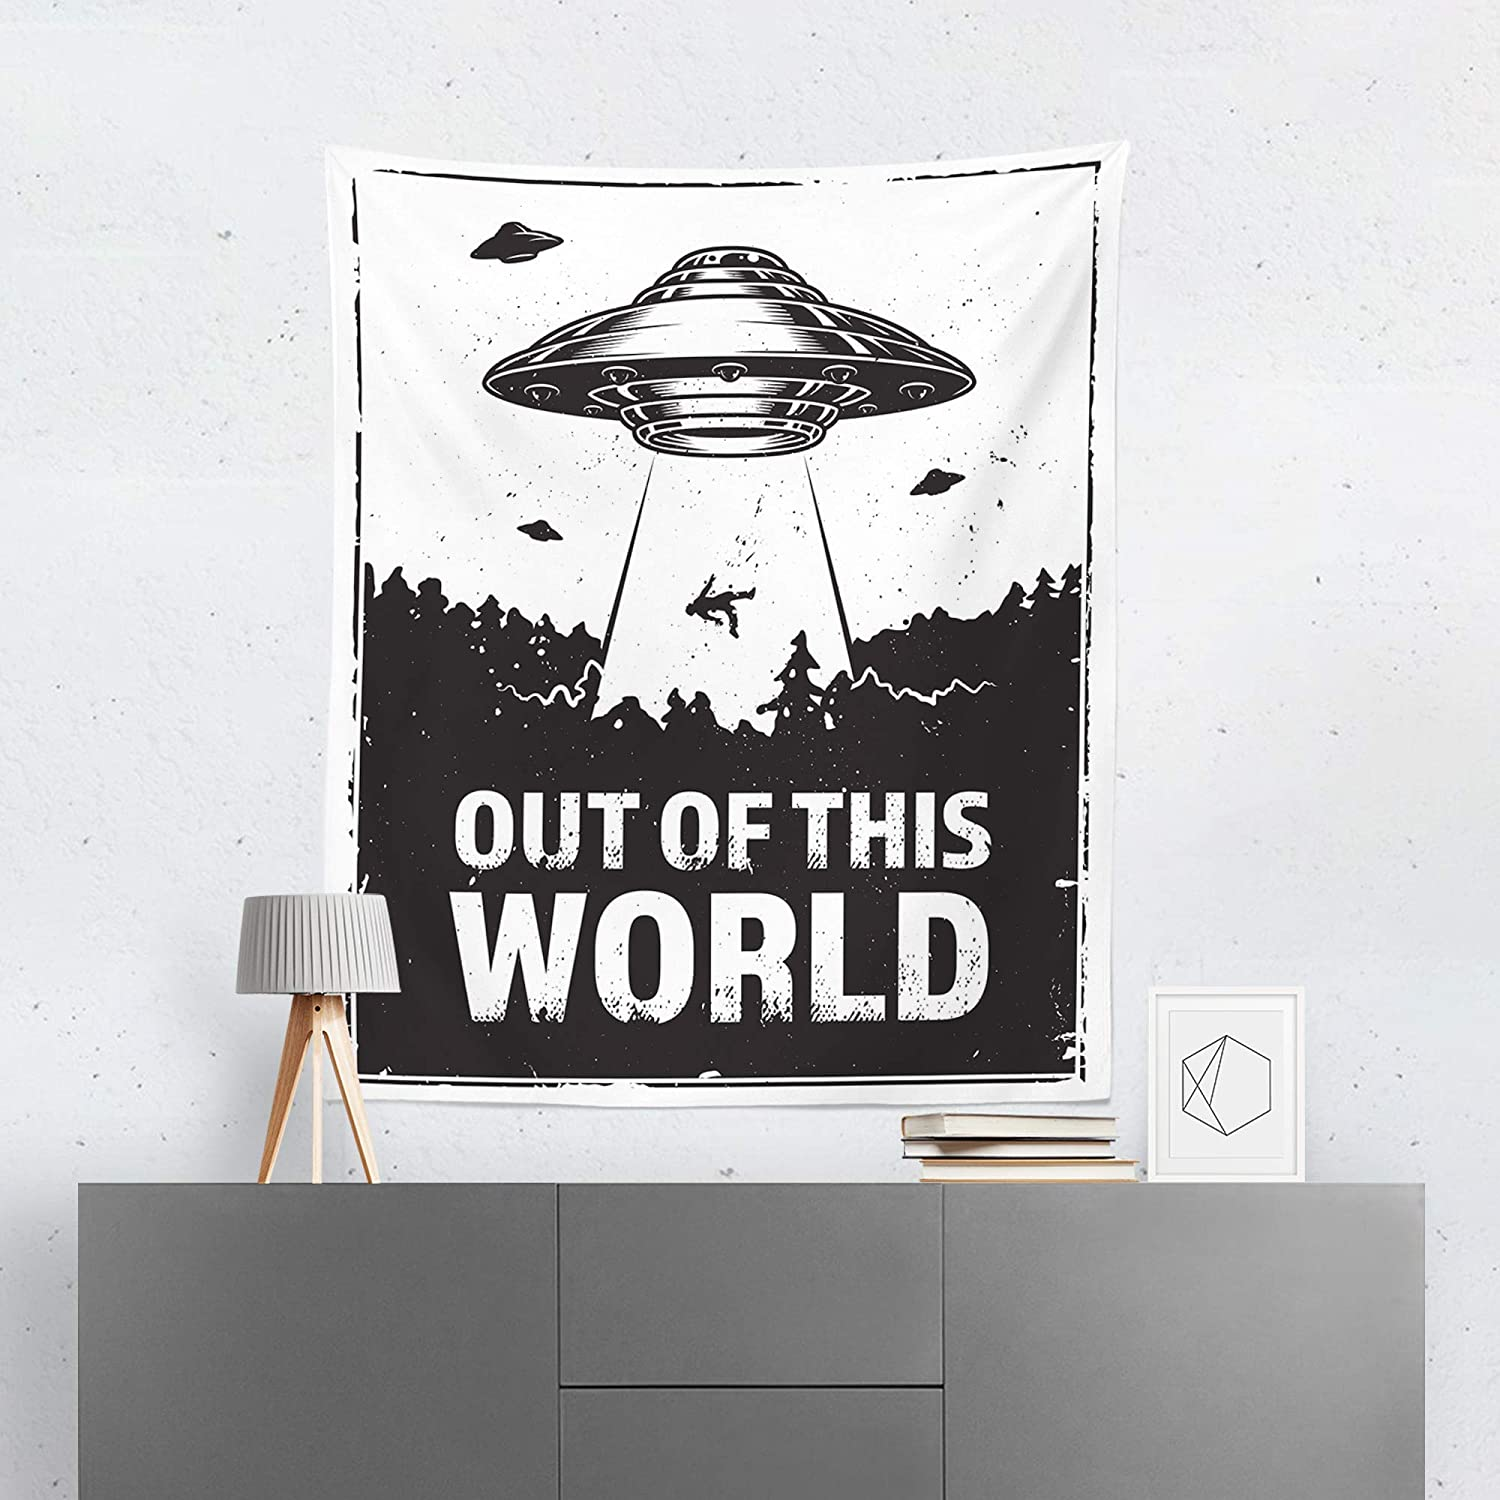 Alien Tapestry Wall Hanging Ufo Aliens Space Outer Space Tapestries Decor College Dorm Living Room Art Gift Bedroom Dormitory Bedspread Small Medium Large Printed In The Usa Tapestries Handmade Products Botani Com Au